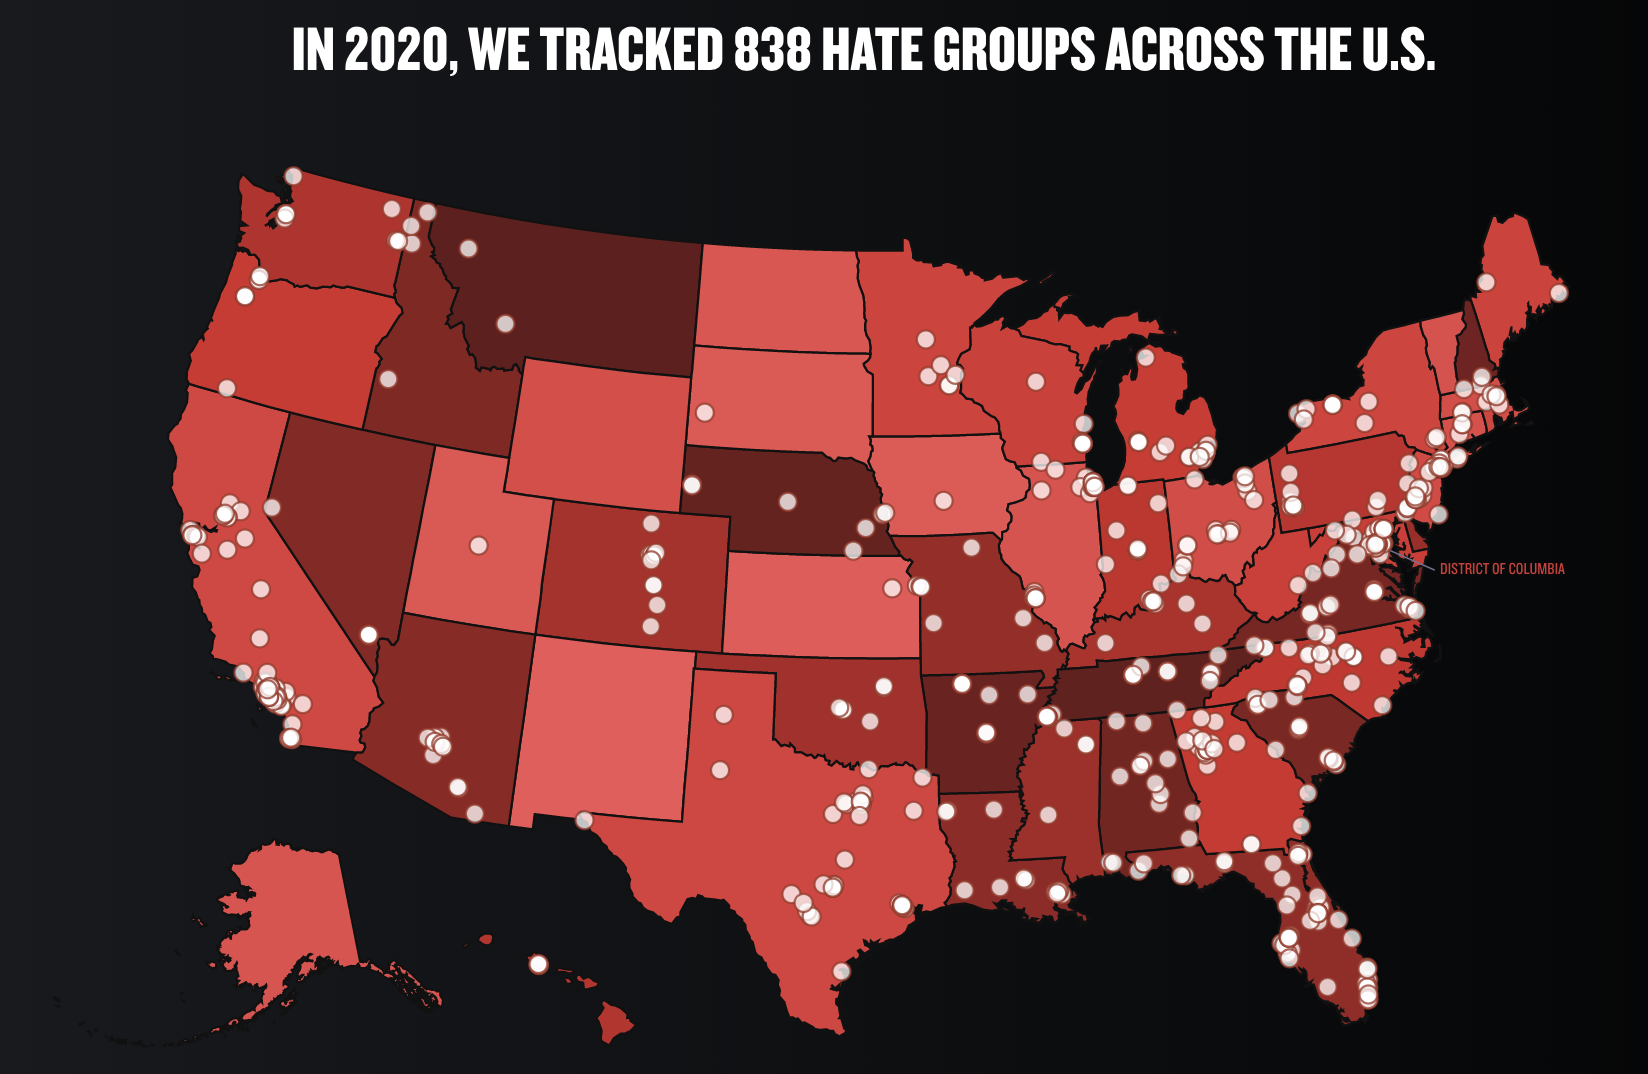 Southern Poverty Law Center - Tracking Hate Groups Map